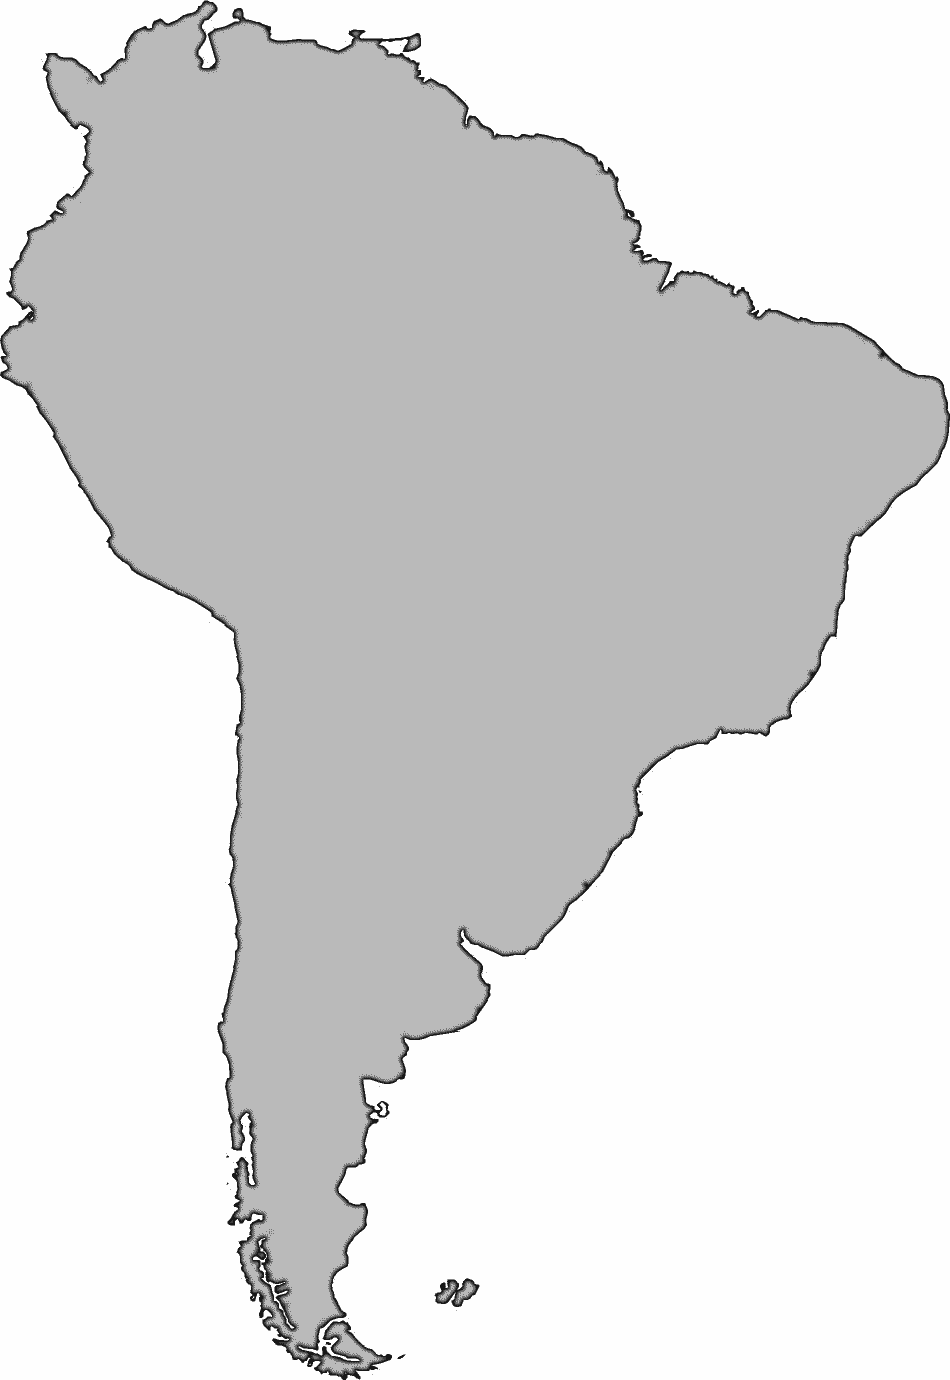 Clipart South America Map.